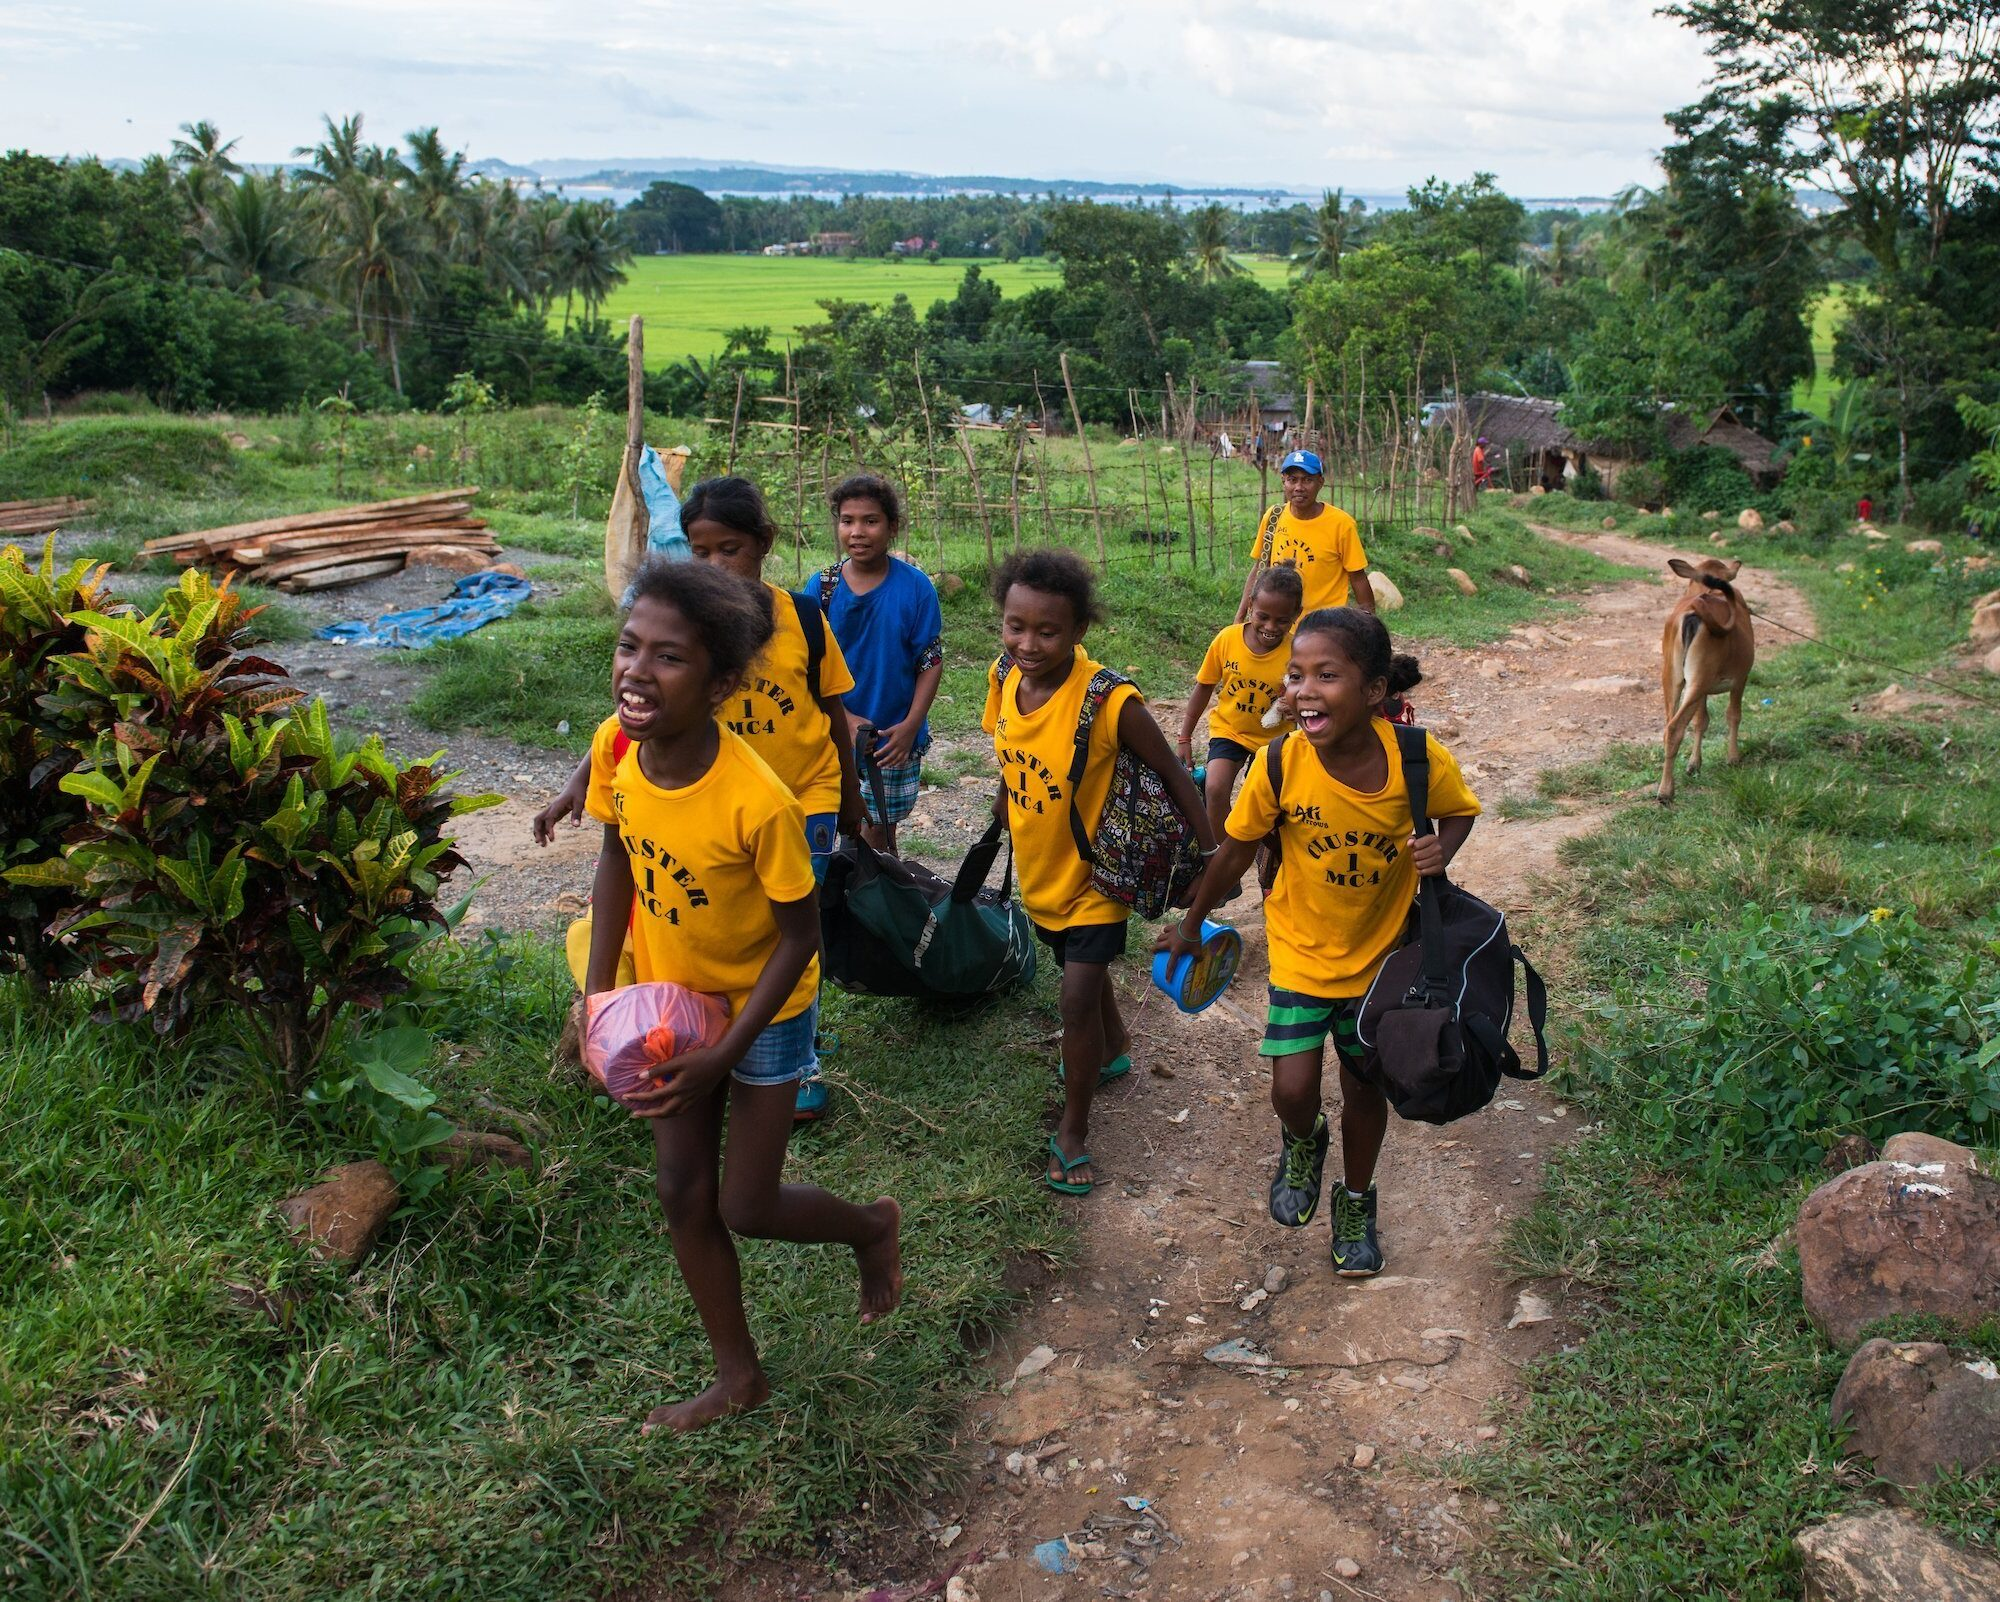 Ati girls arrive back in their village after competing in a local softball tournament. Many of the the indigenous Ati are now integrating more into typical Filipino/adapted western culture, especially the younger generation.